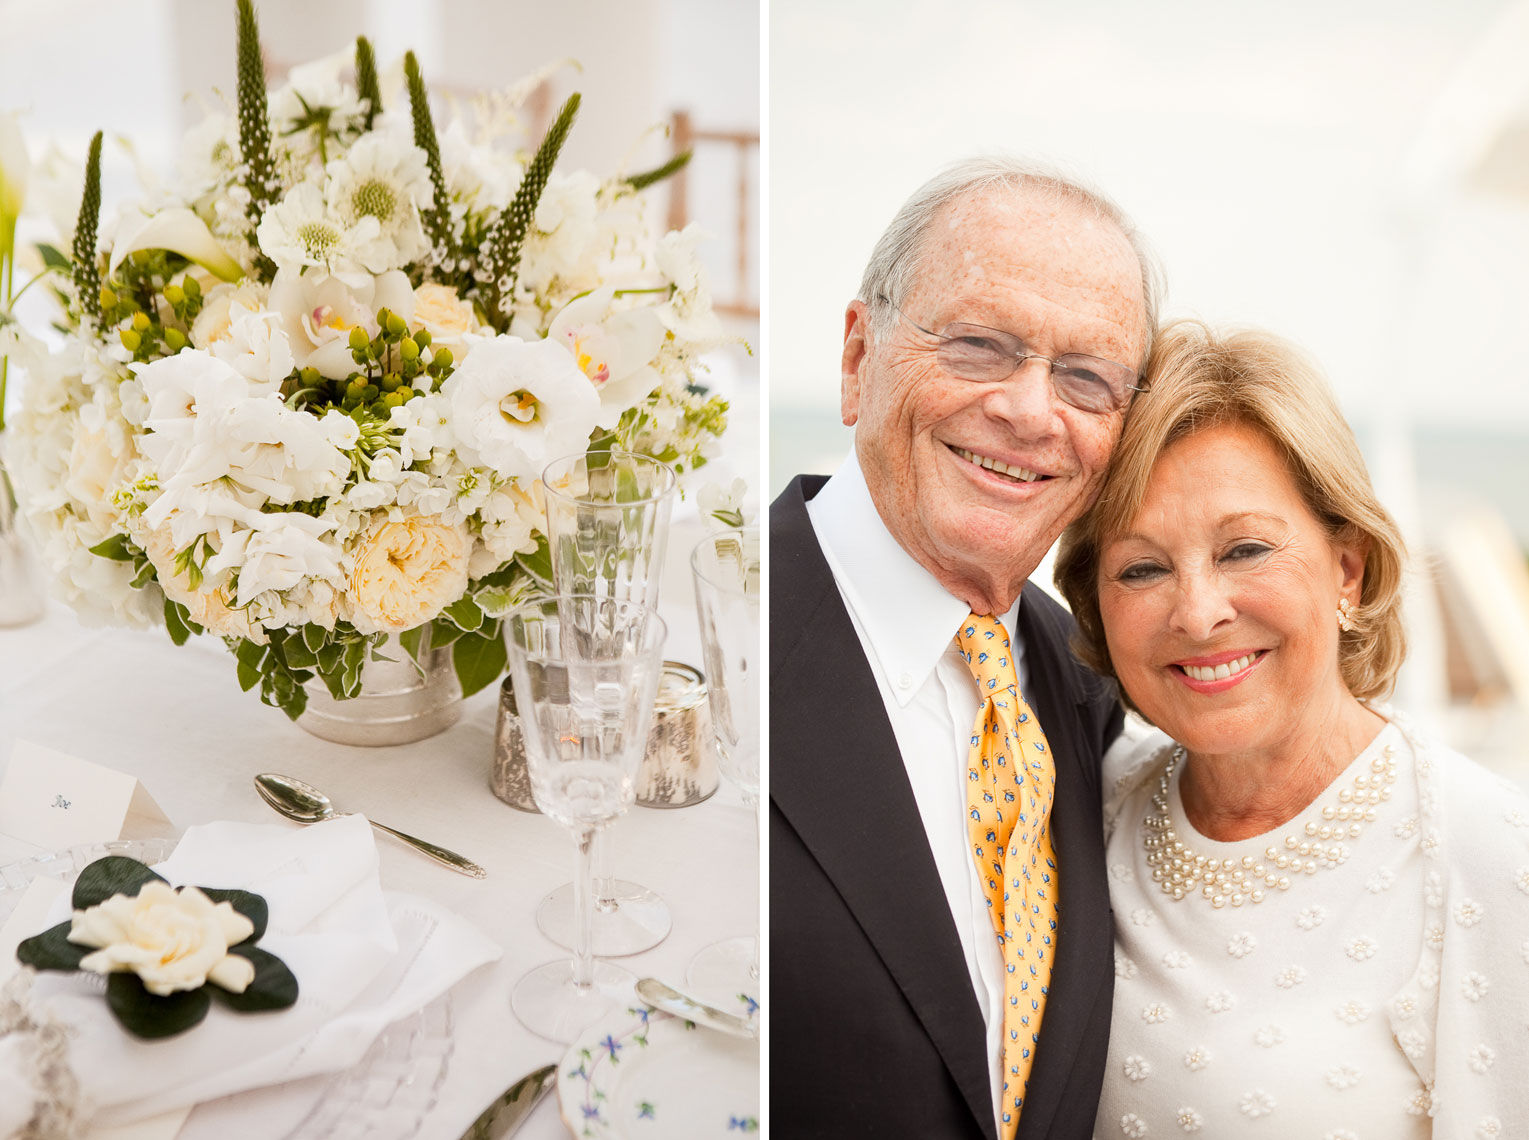 Kathi_Littwin_Photography_Weddings_7061